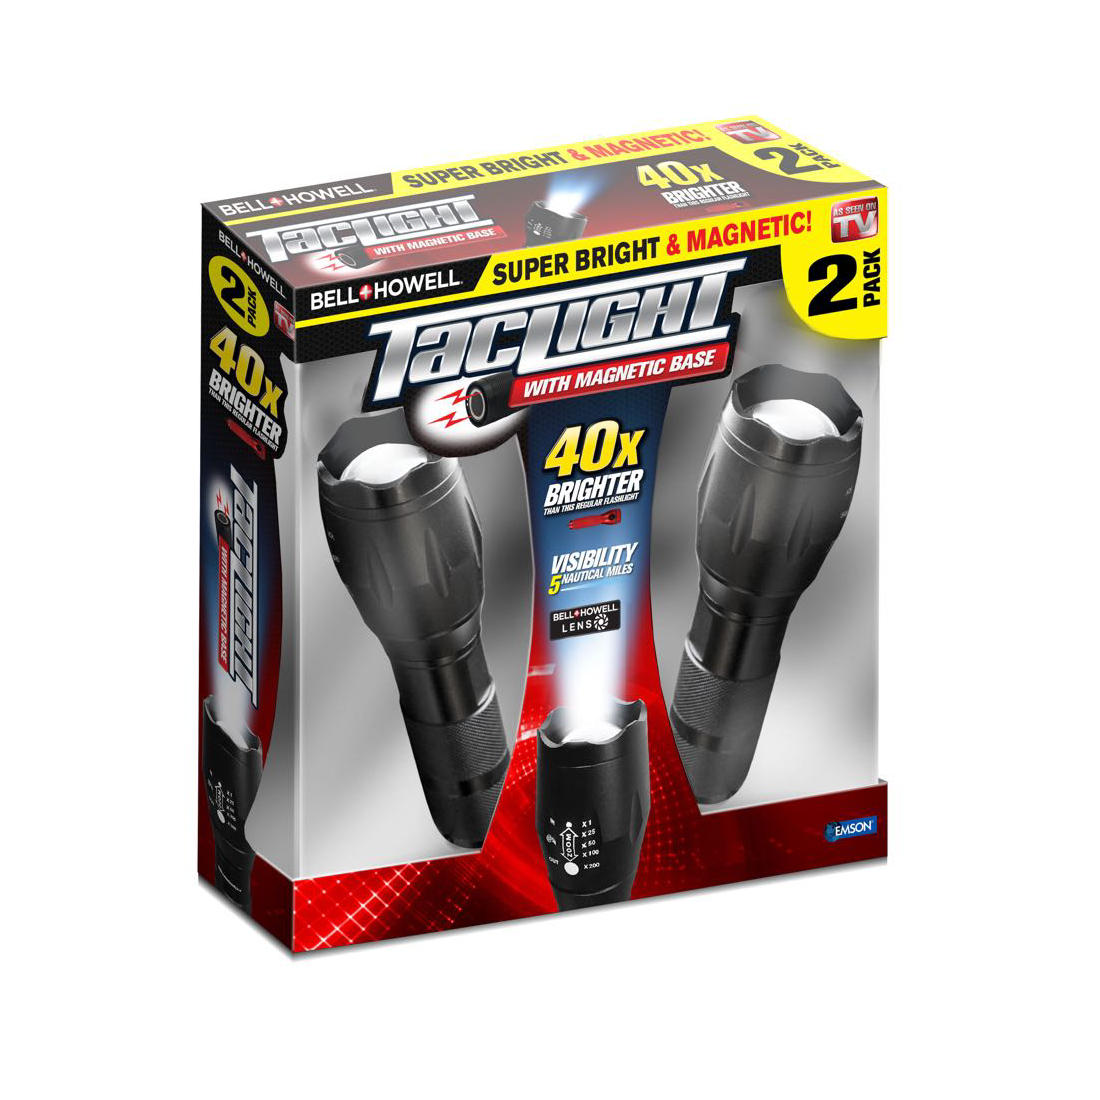 Bell+Howell TacLight, 2 pk